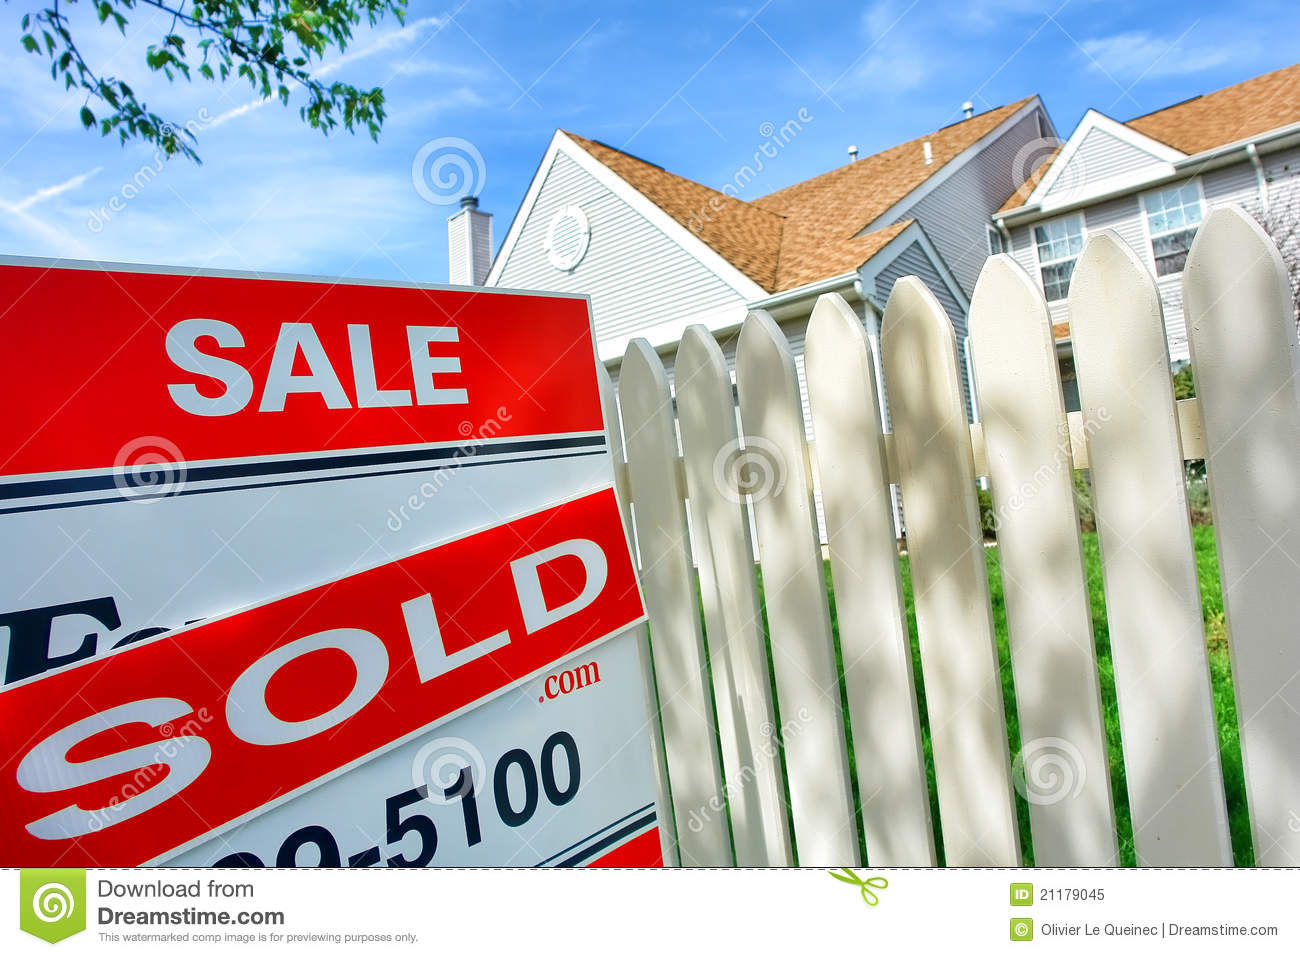 For Sale Sold Sign: Real Estate Sold Rider On For Sale Sign Near House Royalty